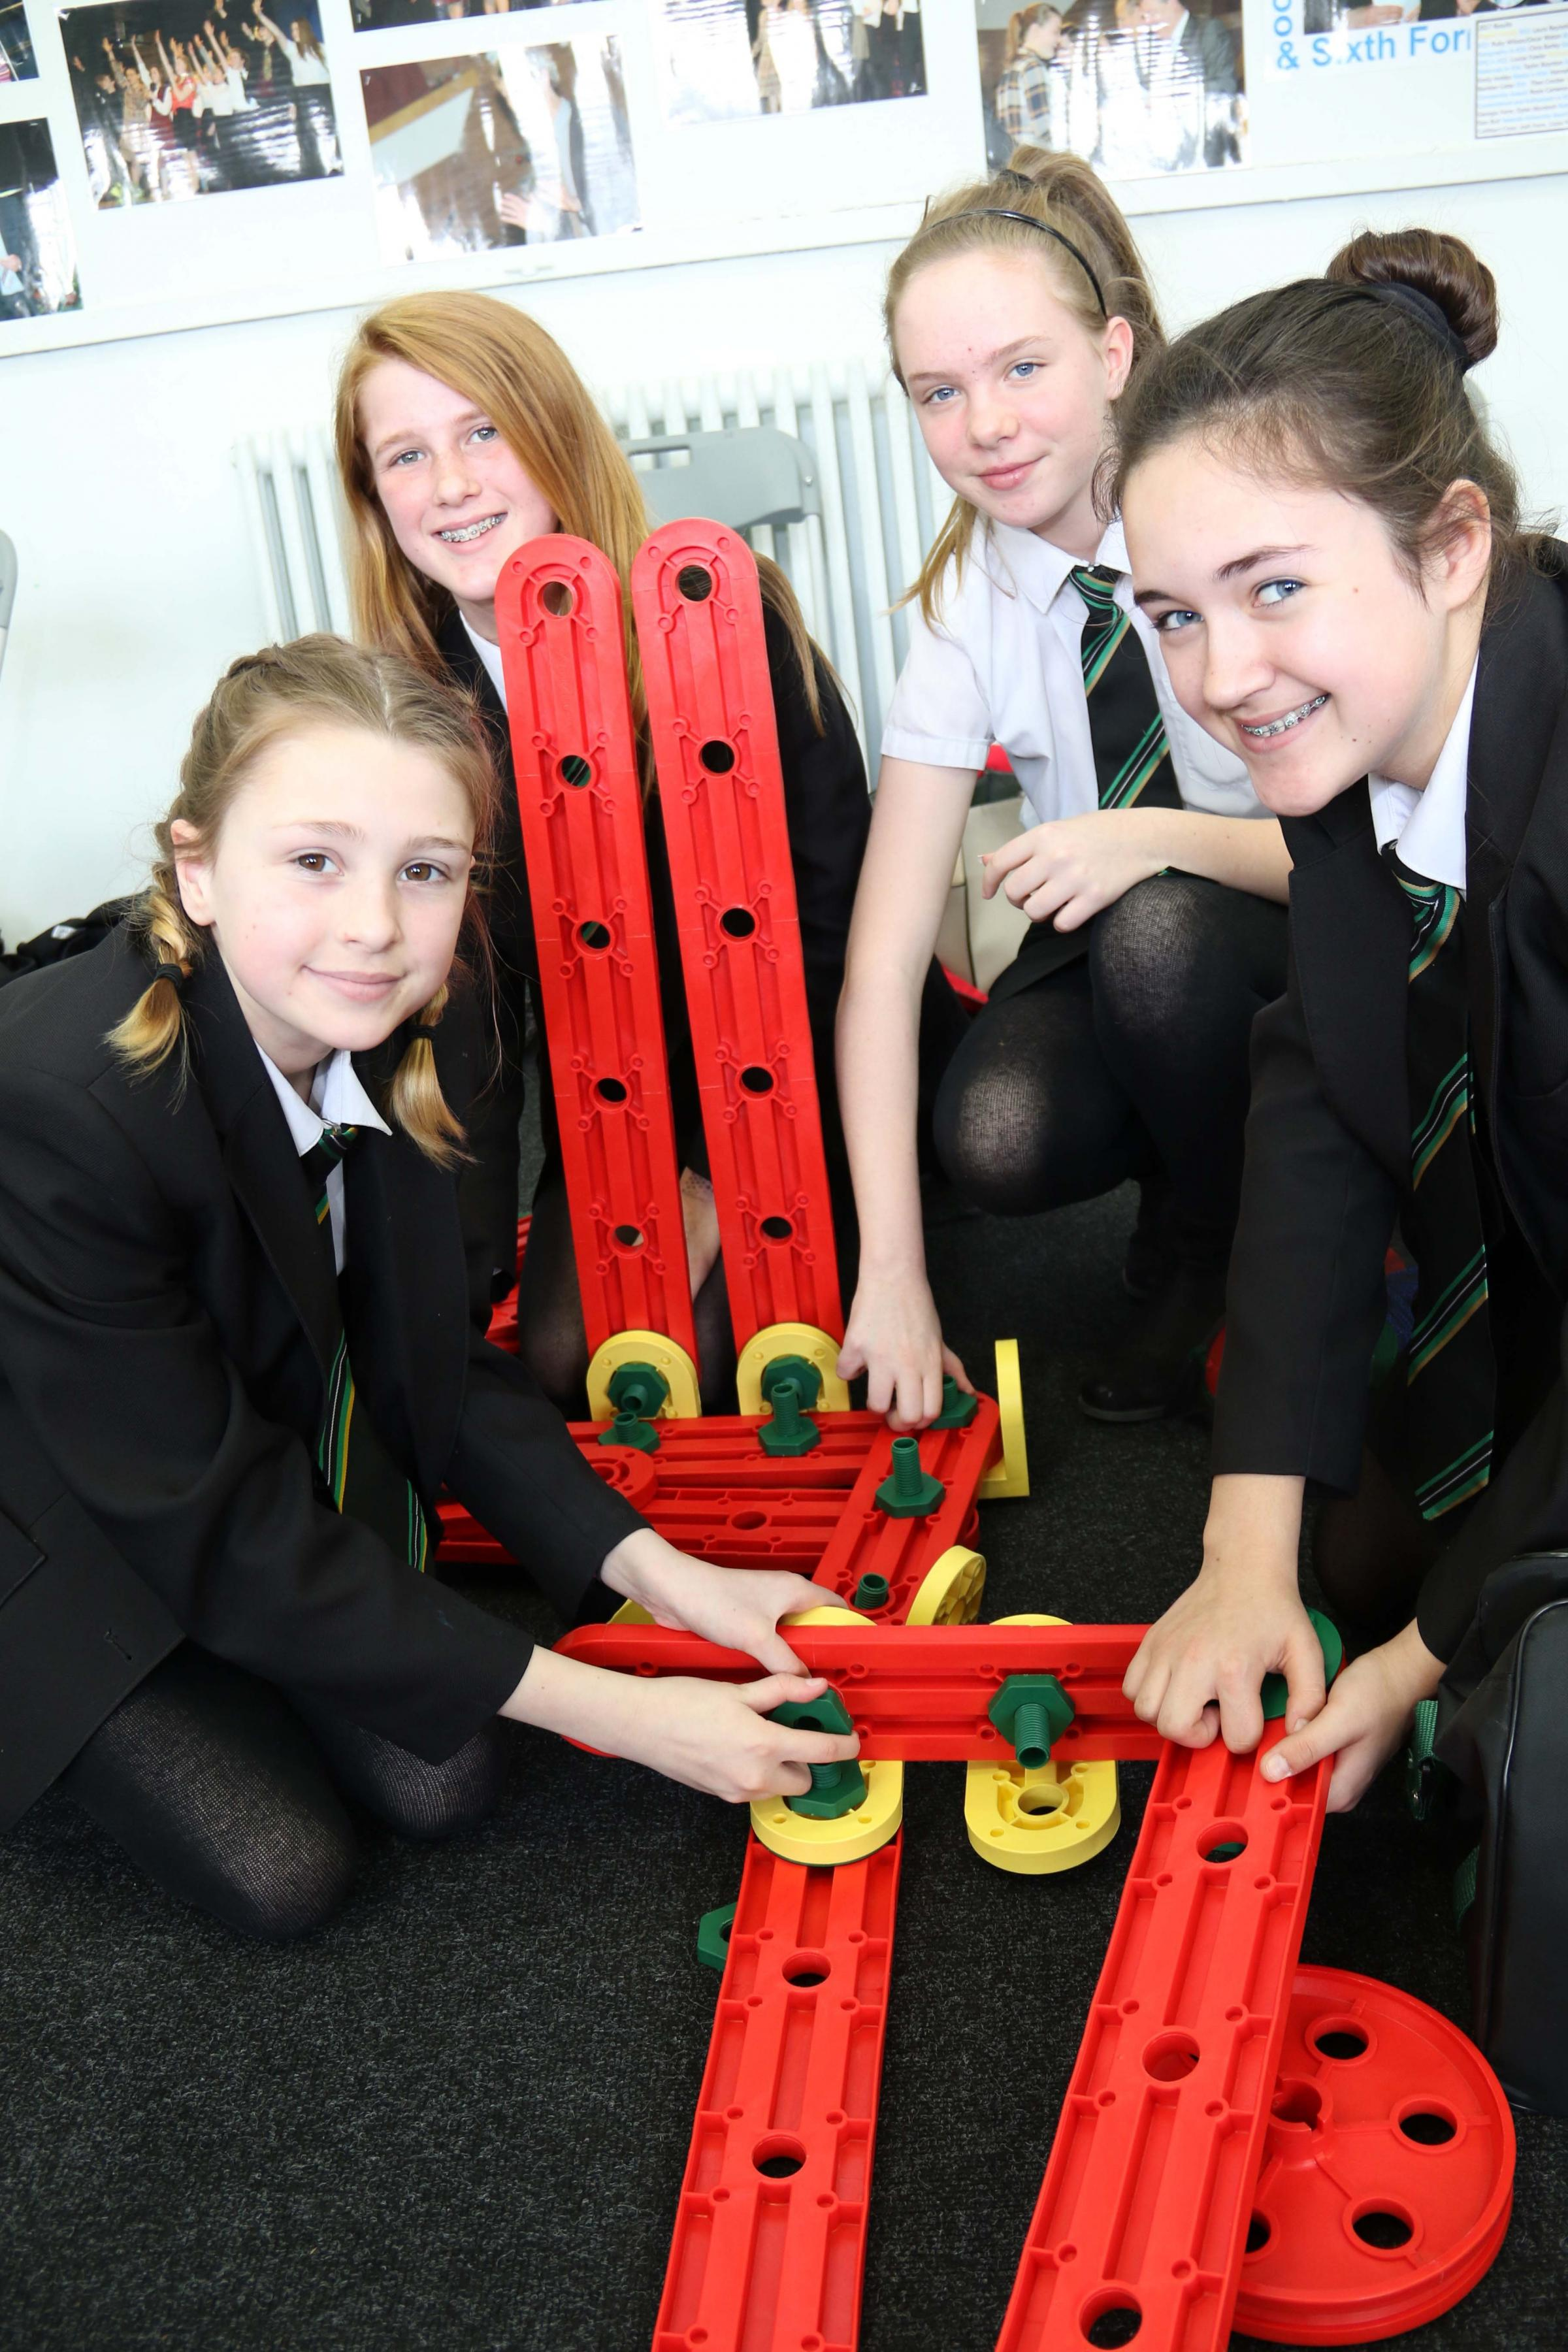 TEAM-BUILDING: From left, Lucy Salkeld, 12, Katie Starkey, 13, Casey Milburn, 13, and Rose Heward, 13, take part in teambuilding exercises organised by the Jon Egging Trust.